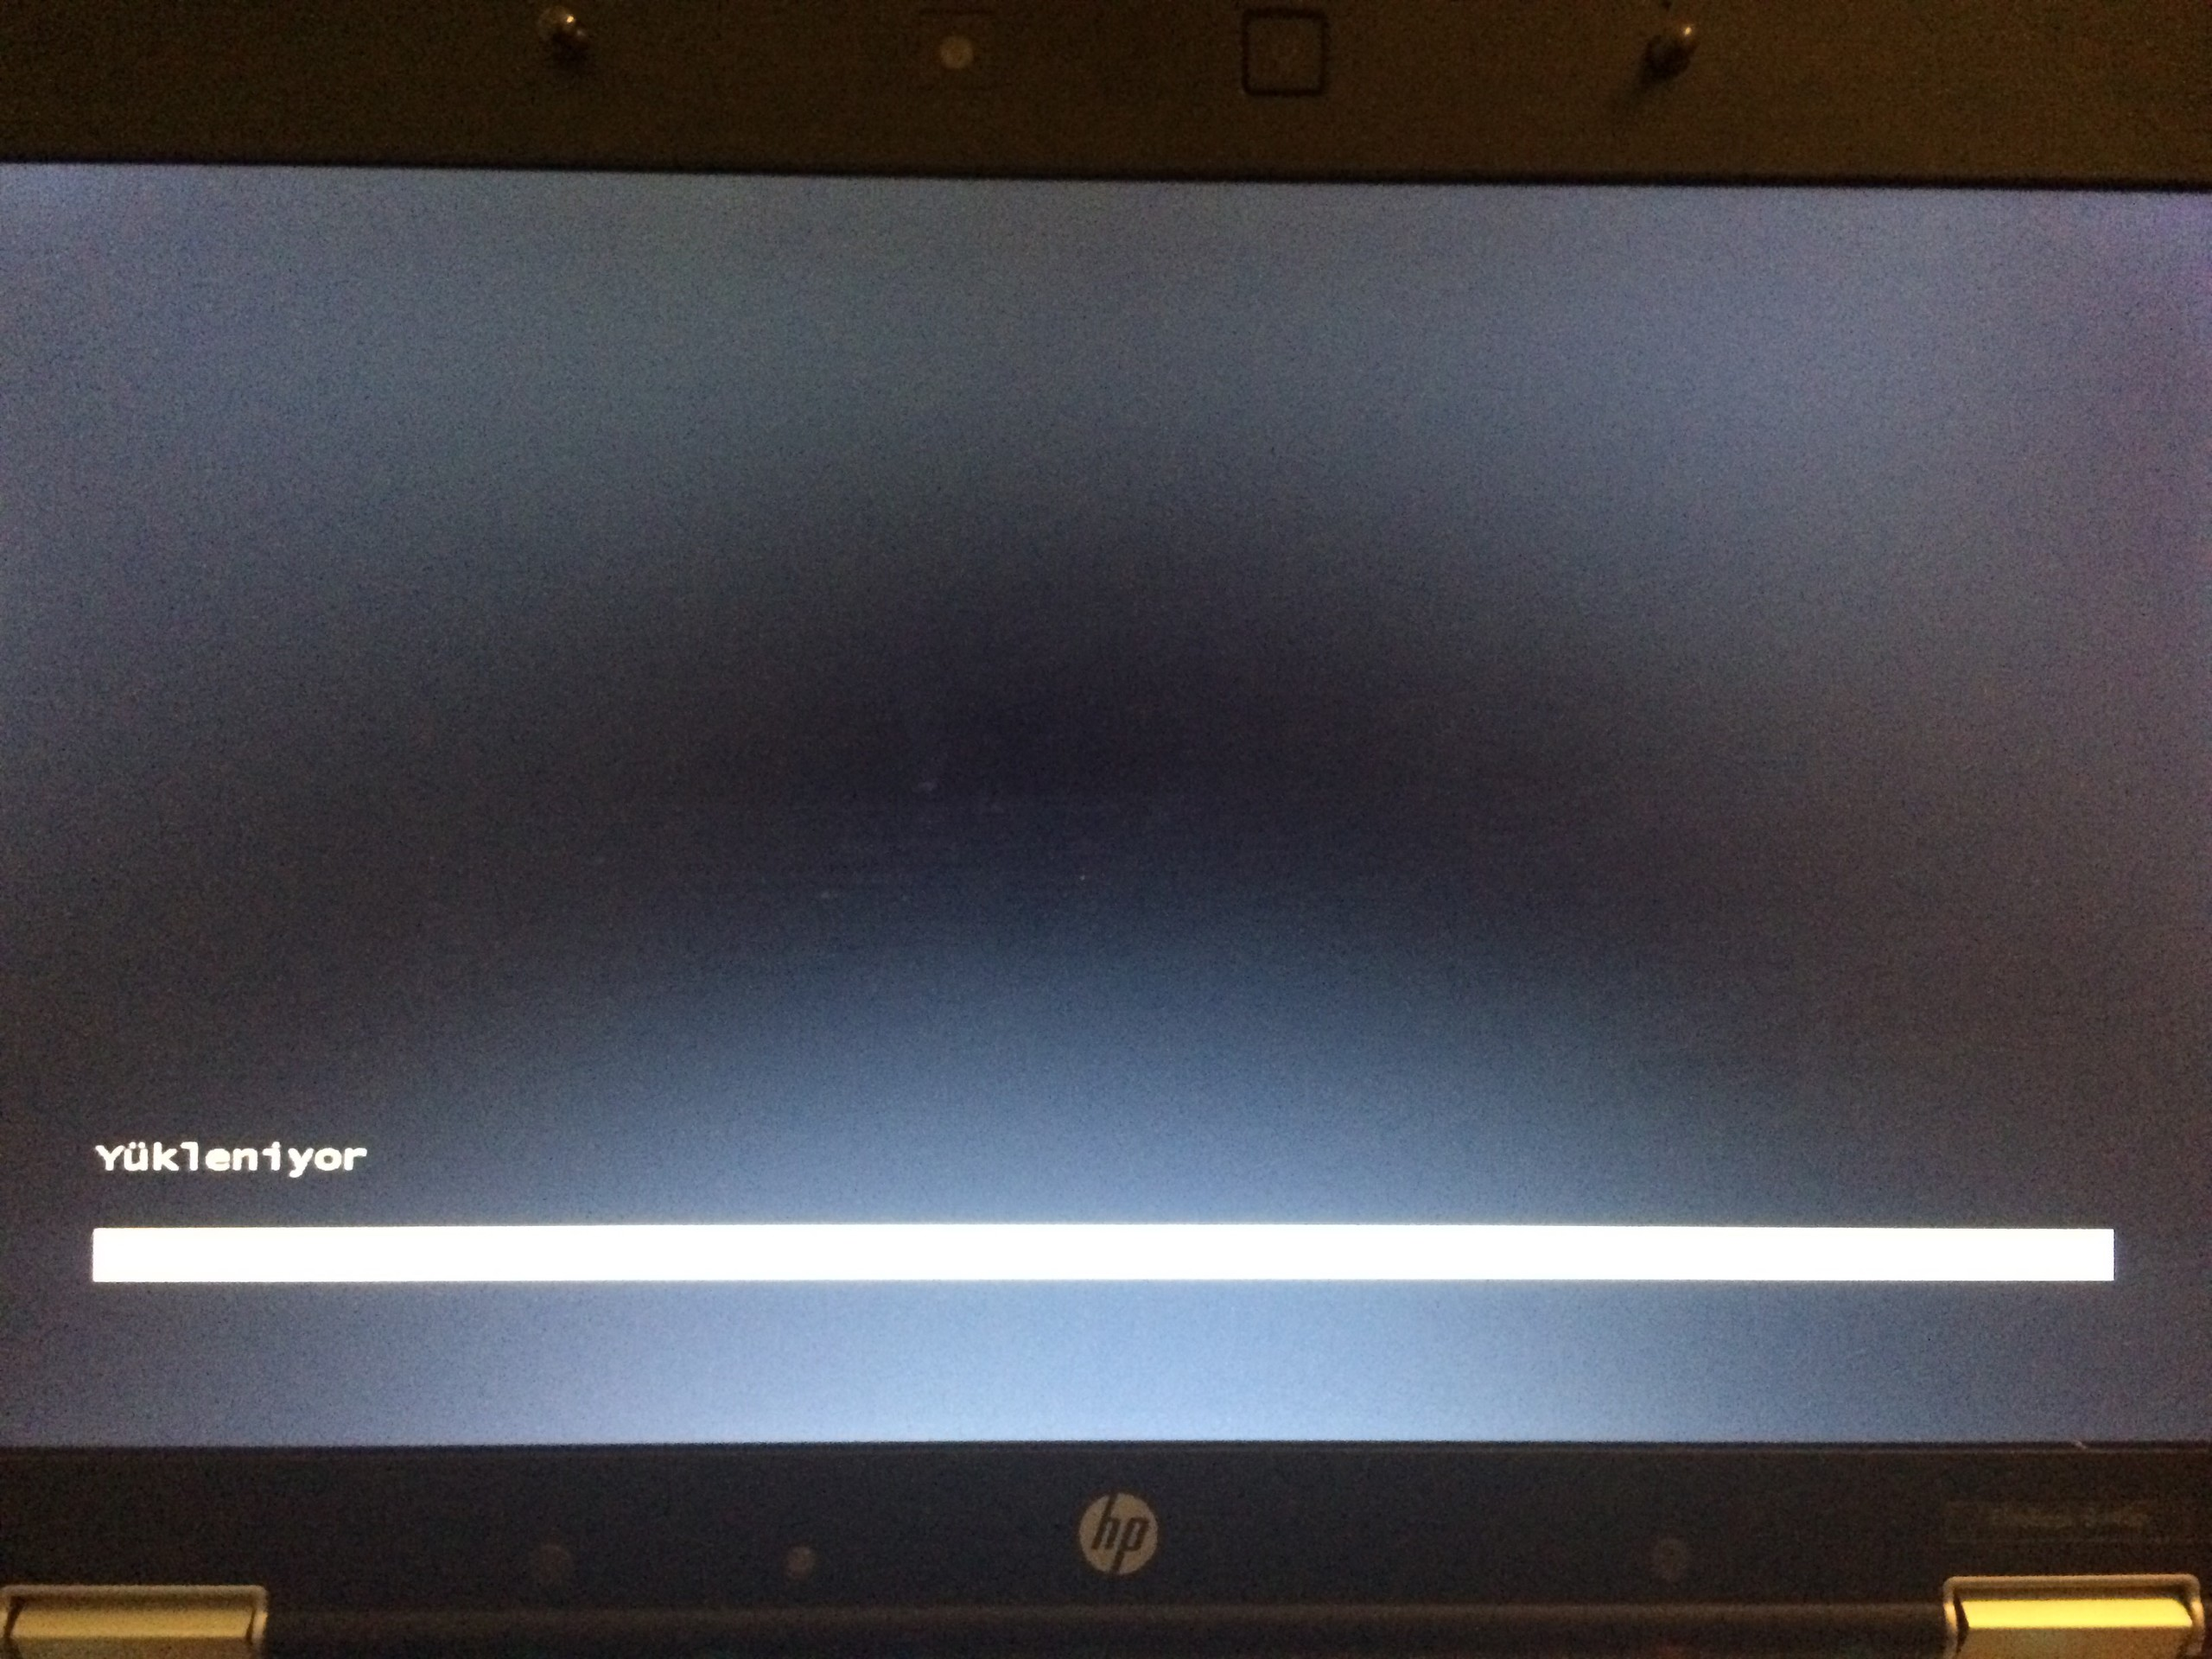 Becoming Phill) How to install windows xp on hp elitebook 8440p